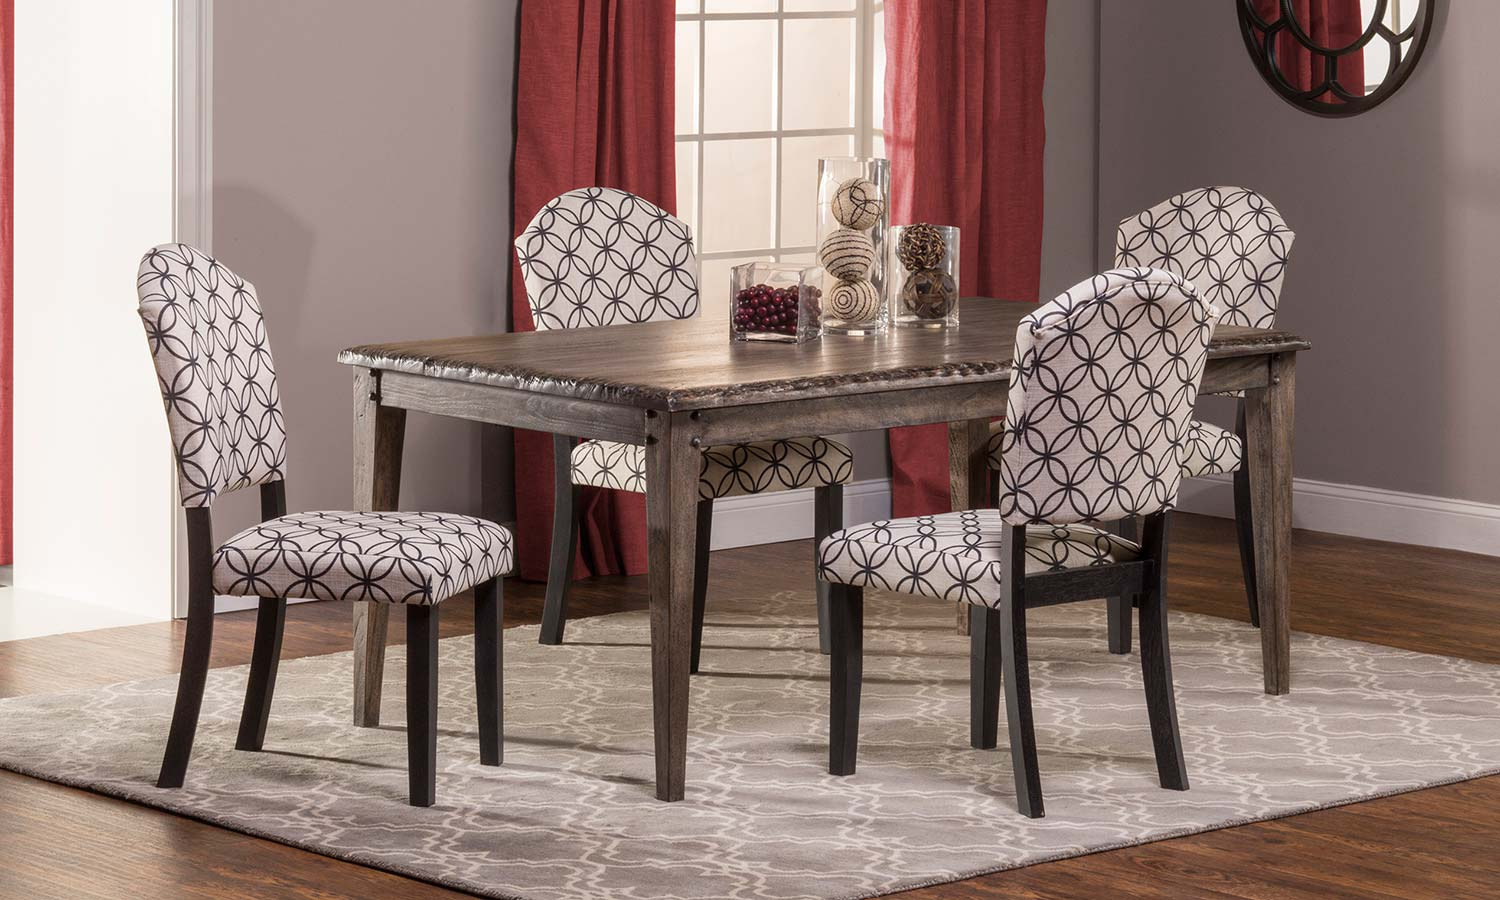 Hillsdale Lorient 5 PC Rectangle Dining Set with Parsons Chair - Washed Charcoal Gray/Black - Bristol Black - Off White with Black Circle Pattern